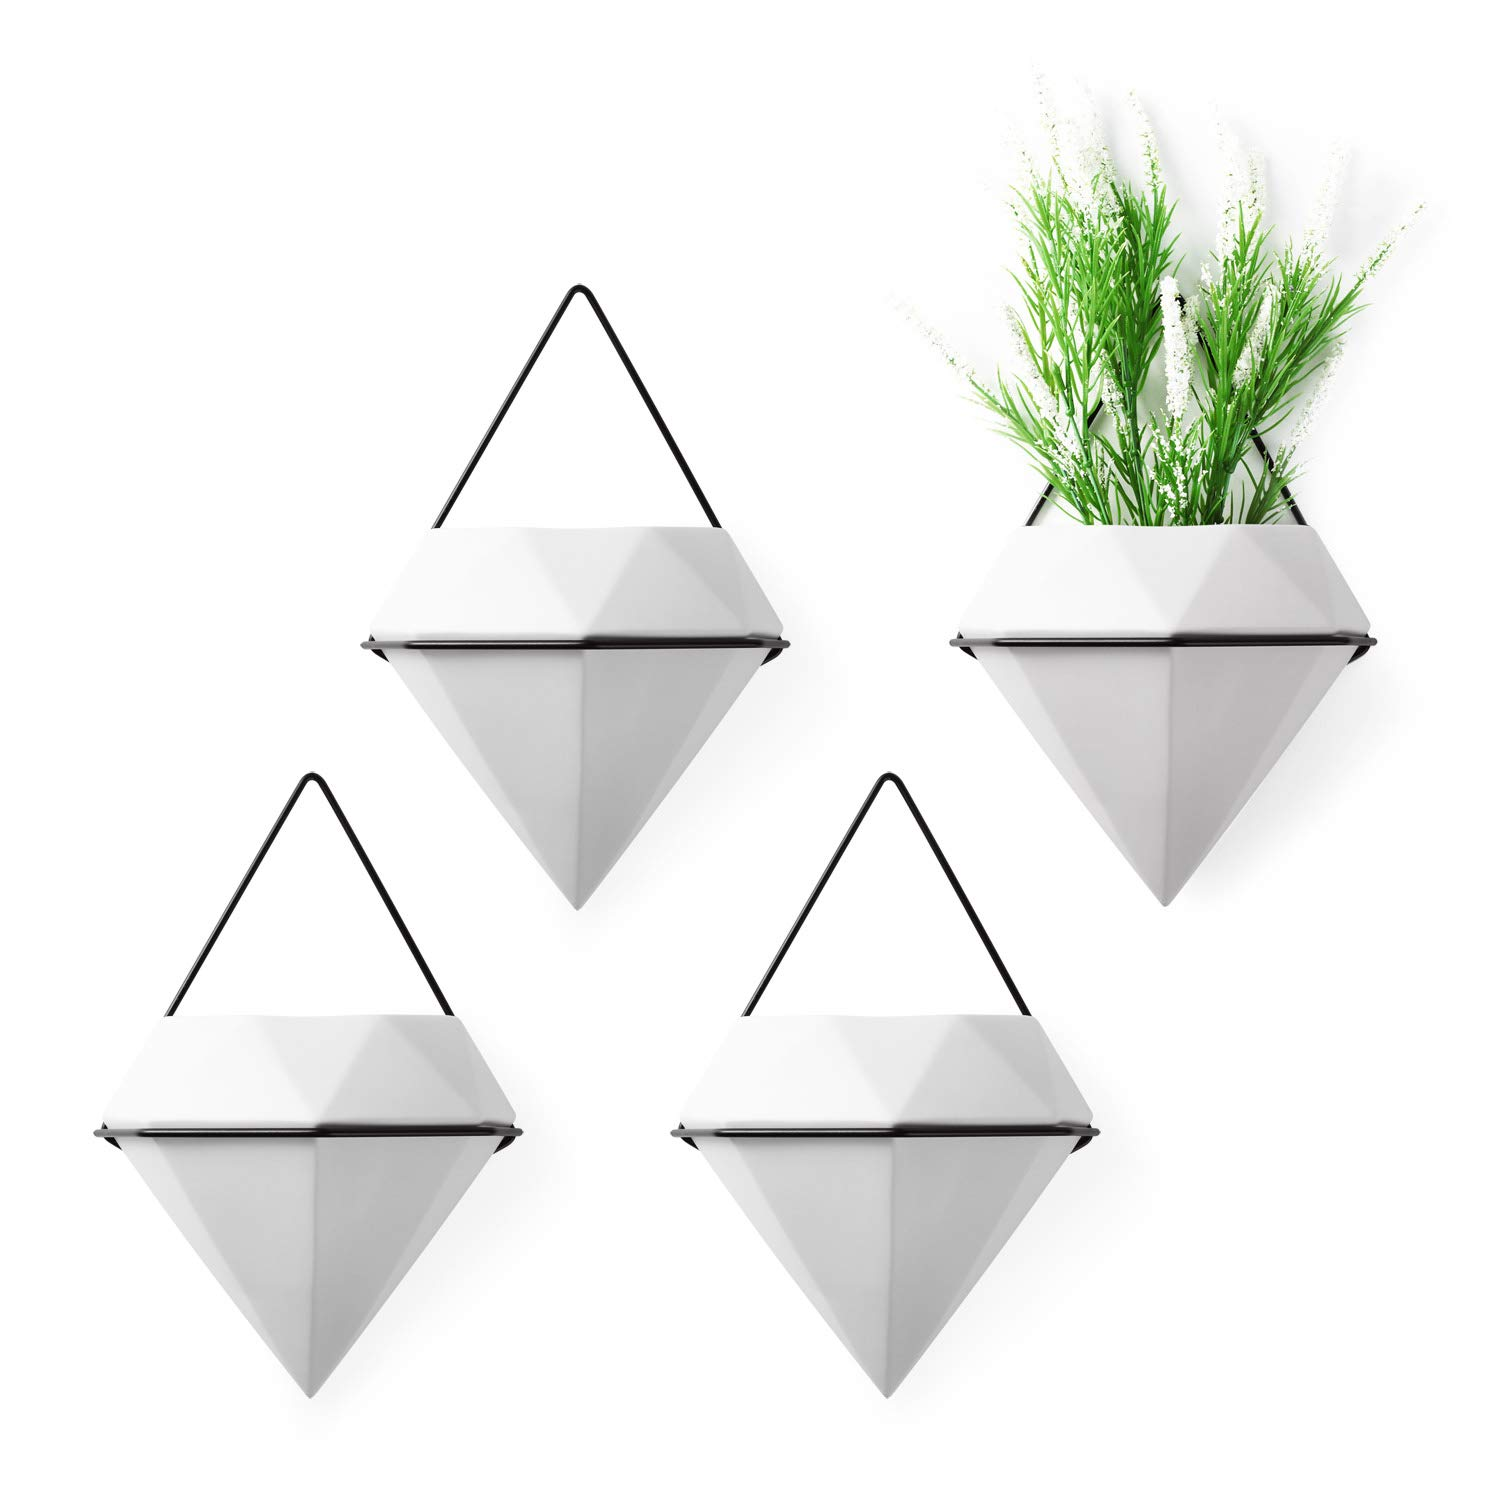 T4U Diamond Wall Planters Geometric Wall Vases Set of 4, Ceramic Mounted Succulent Air Plants Pots Cactus Faux Plant Containers Modern Indoor Decor for Home and Office